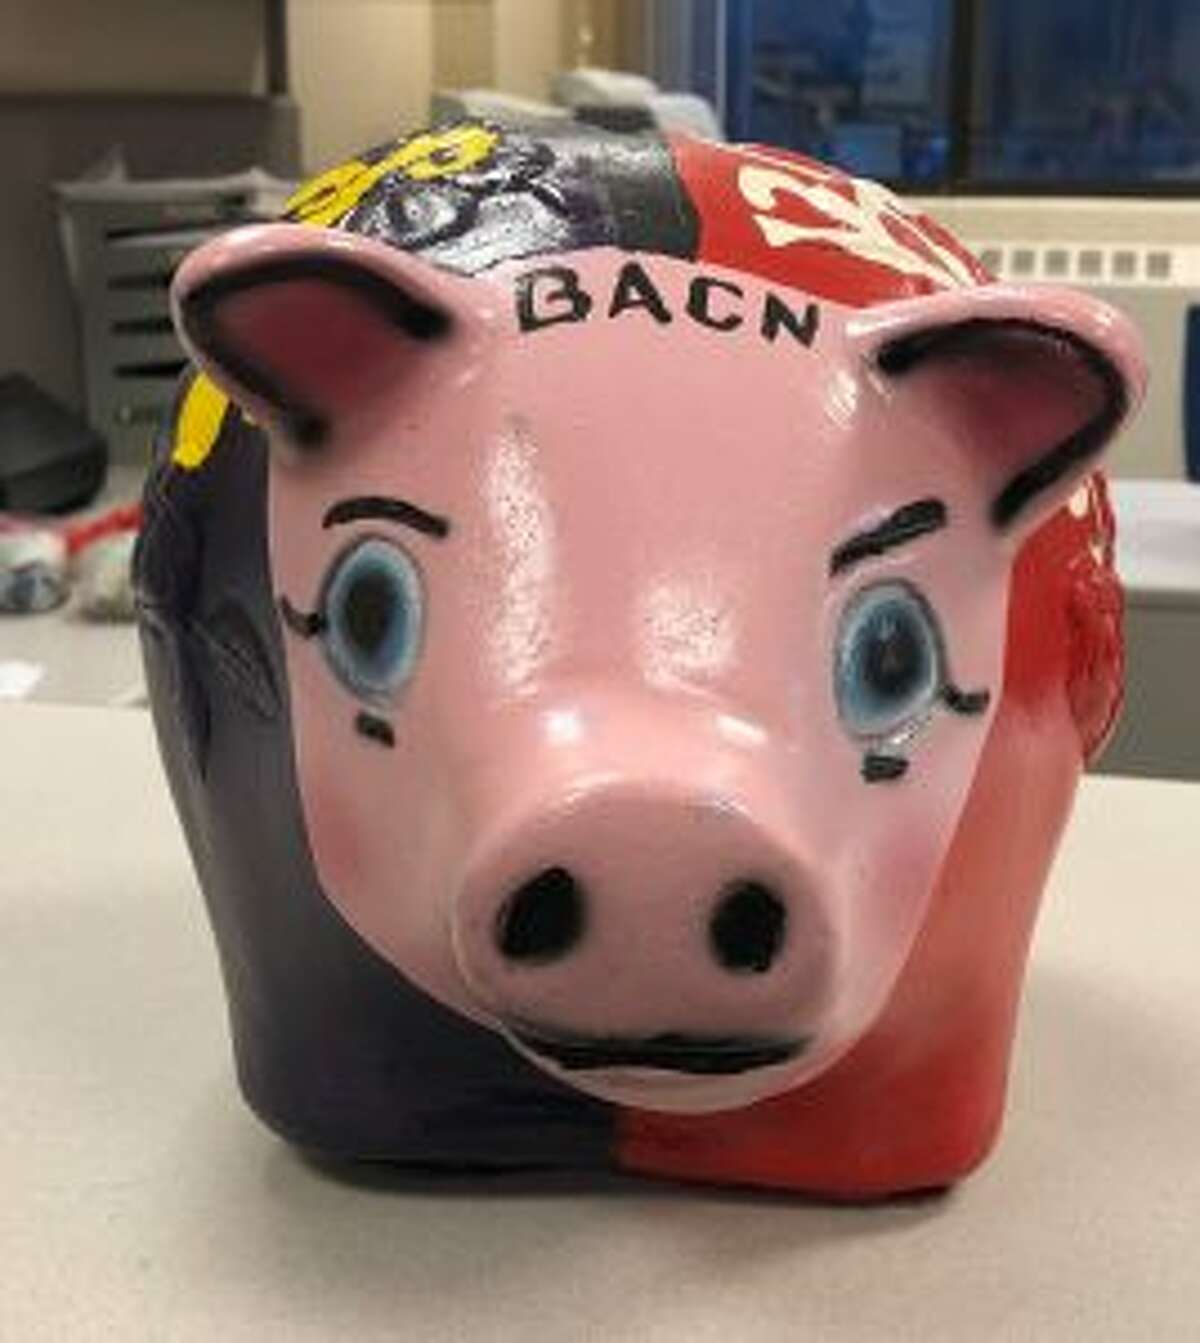 This week, Benzie Central and Frankfort will be battling for the pig, which will be awarded to the whichever school collects the most donations to BACN. (Courtesy photo)